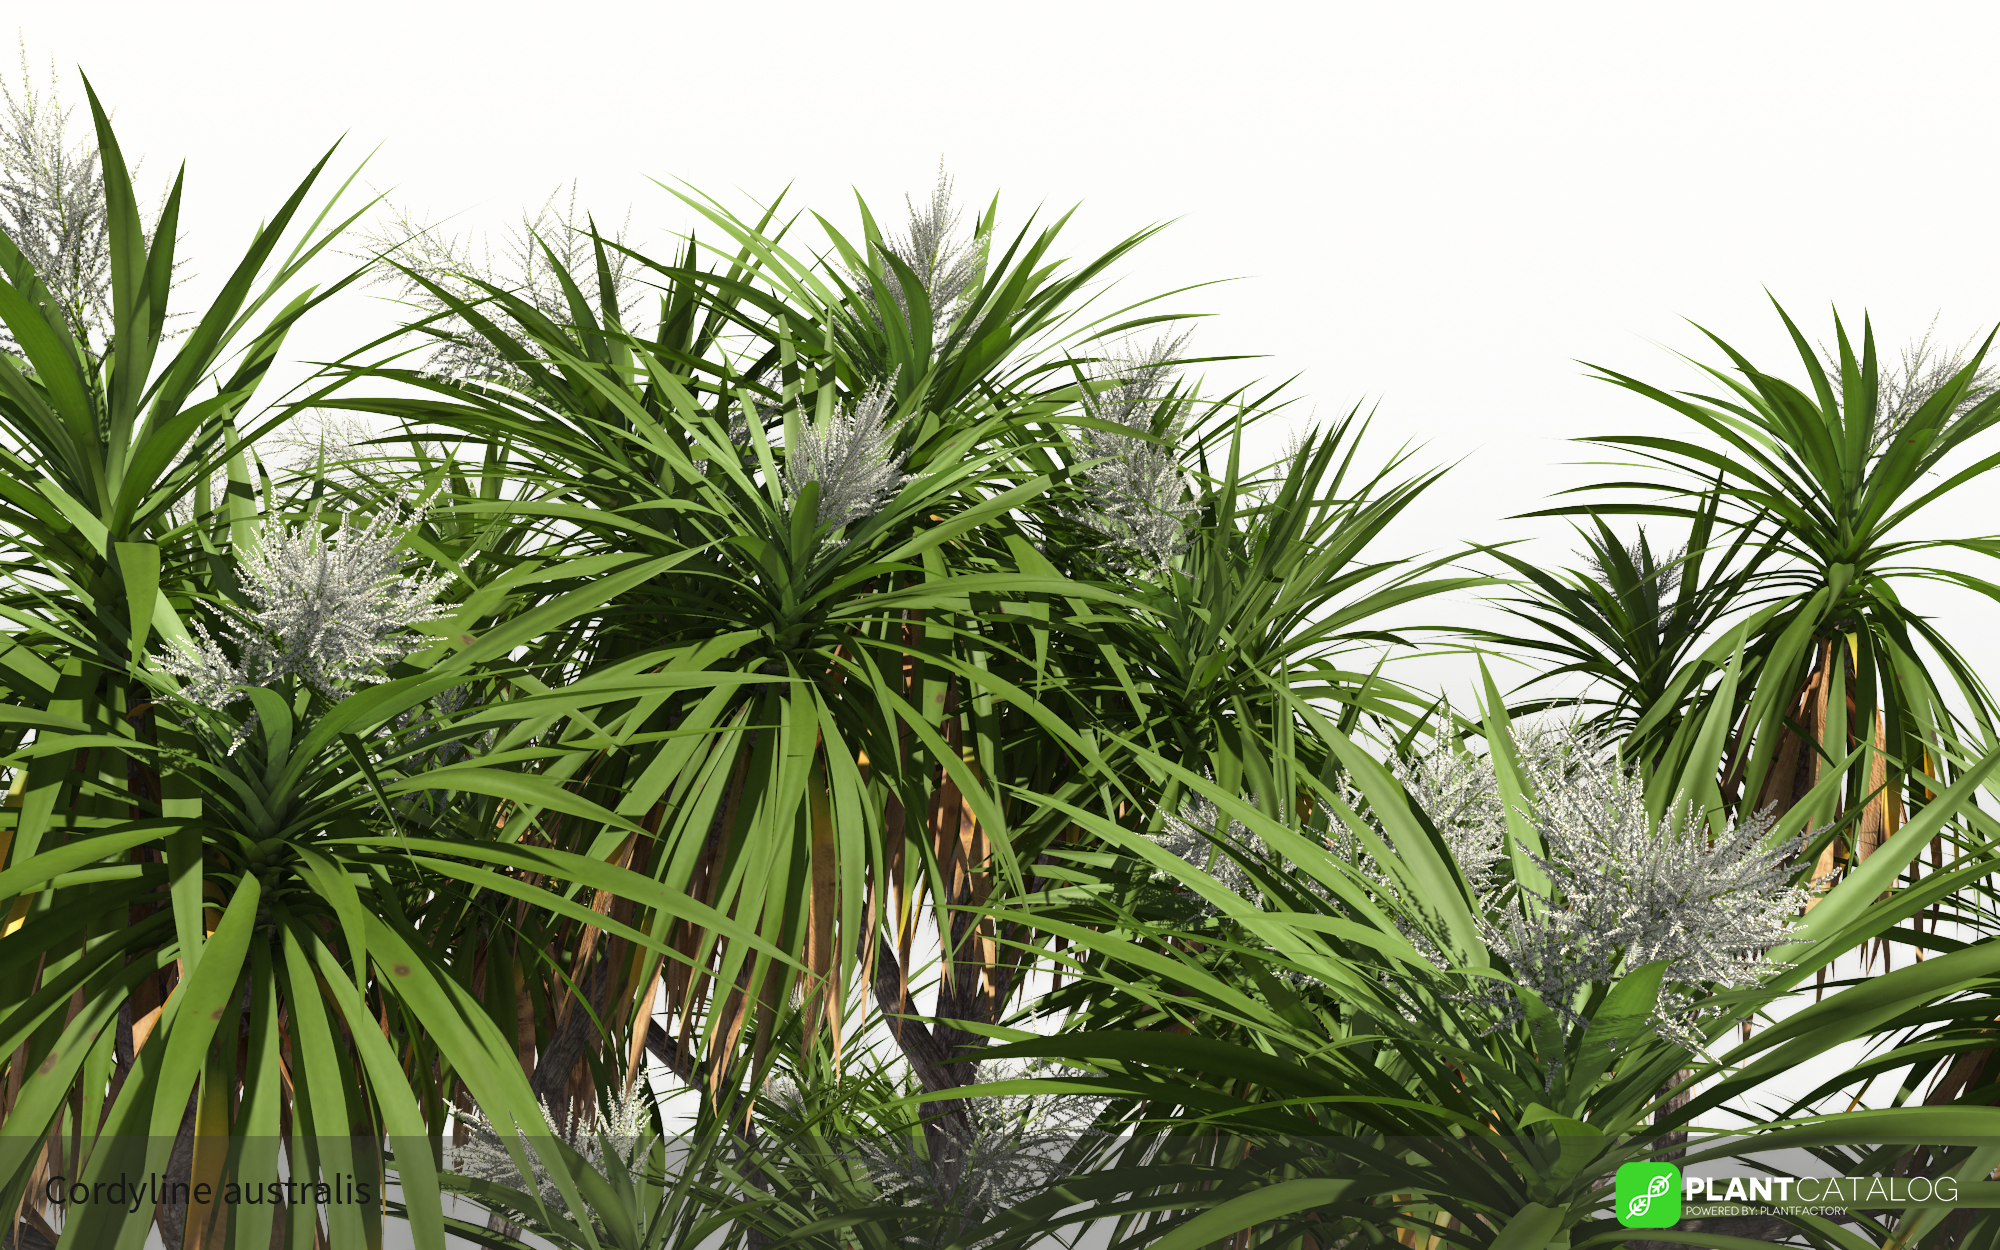 3D model of the Cabbage tree - Cordyline australis - from the PlantCatalog, rendered in VUE